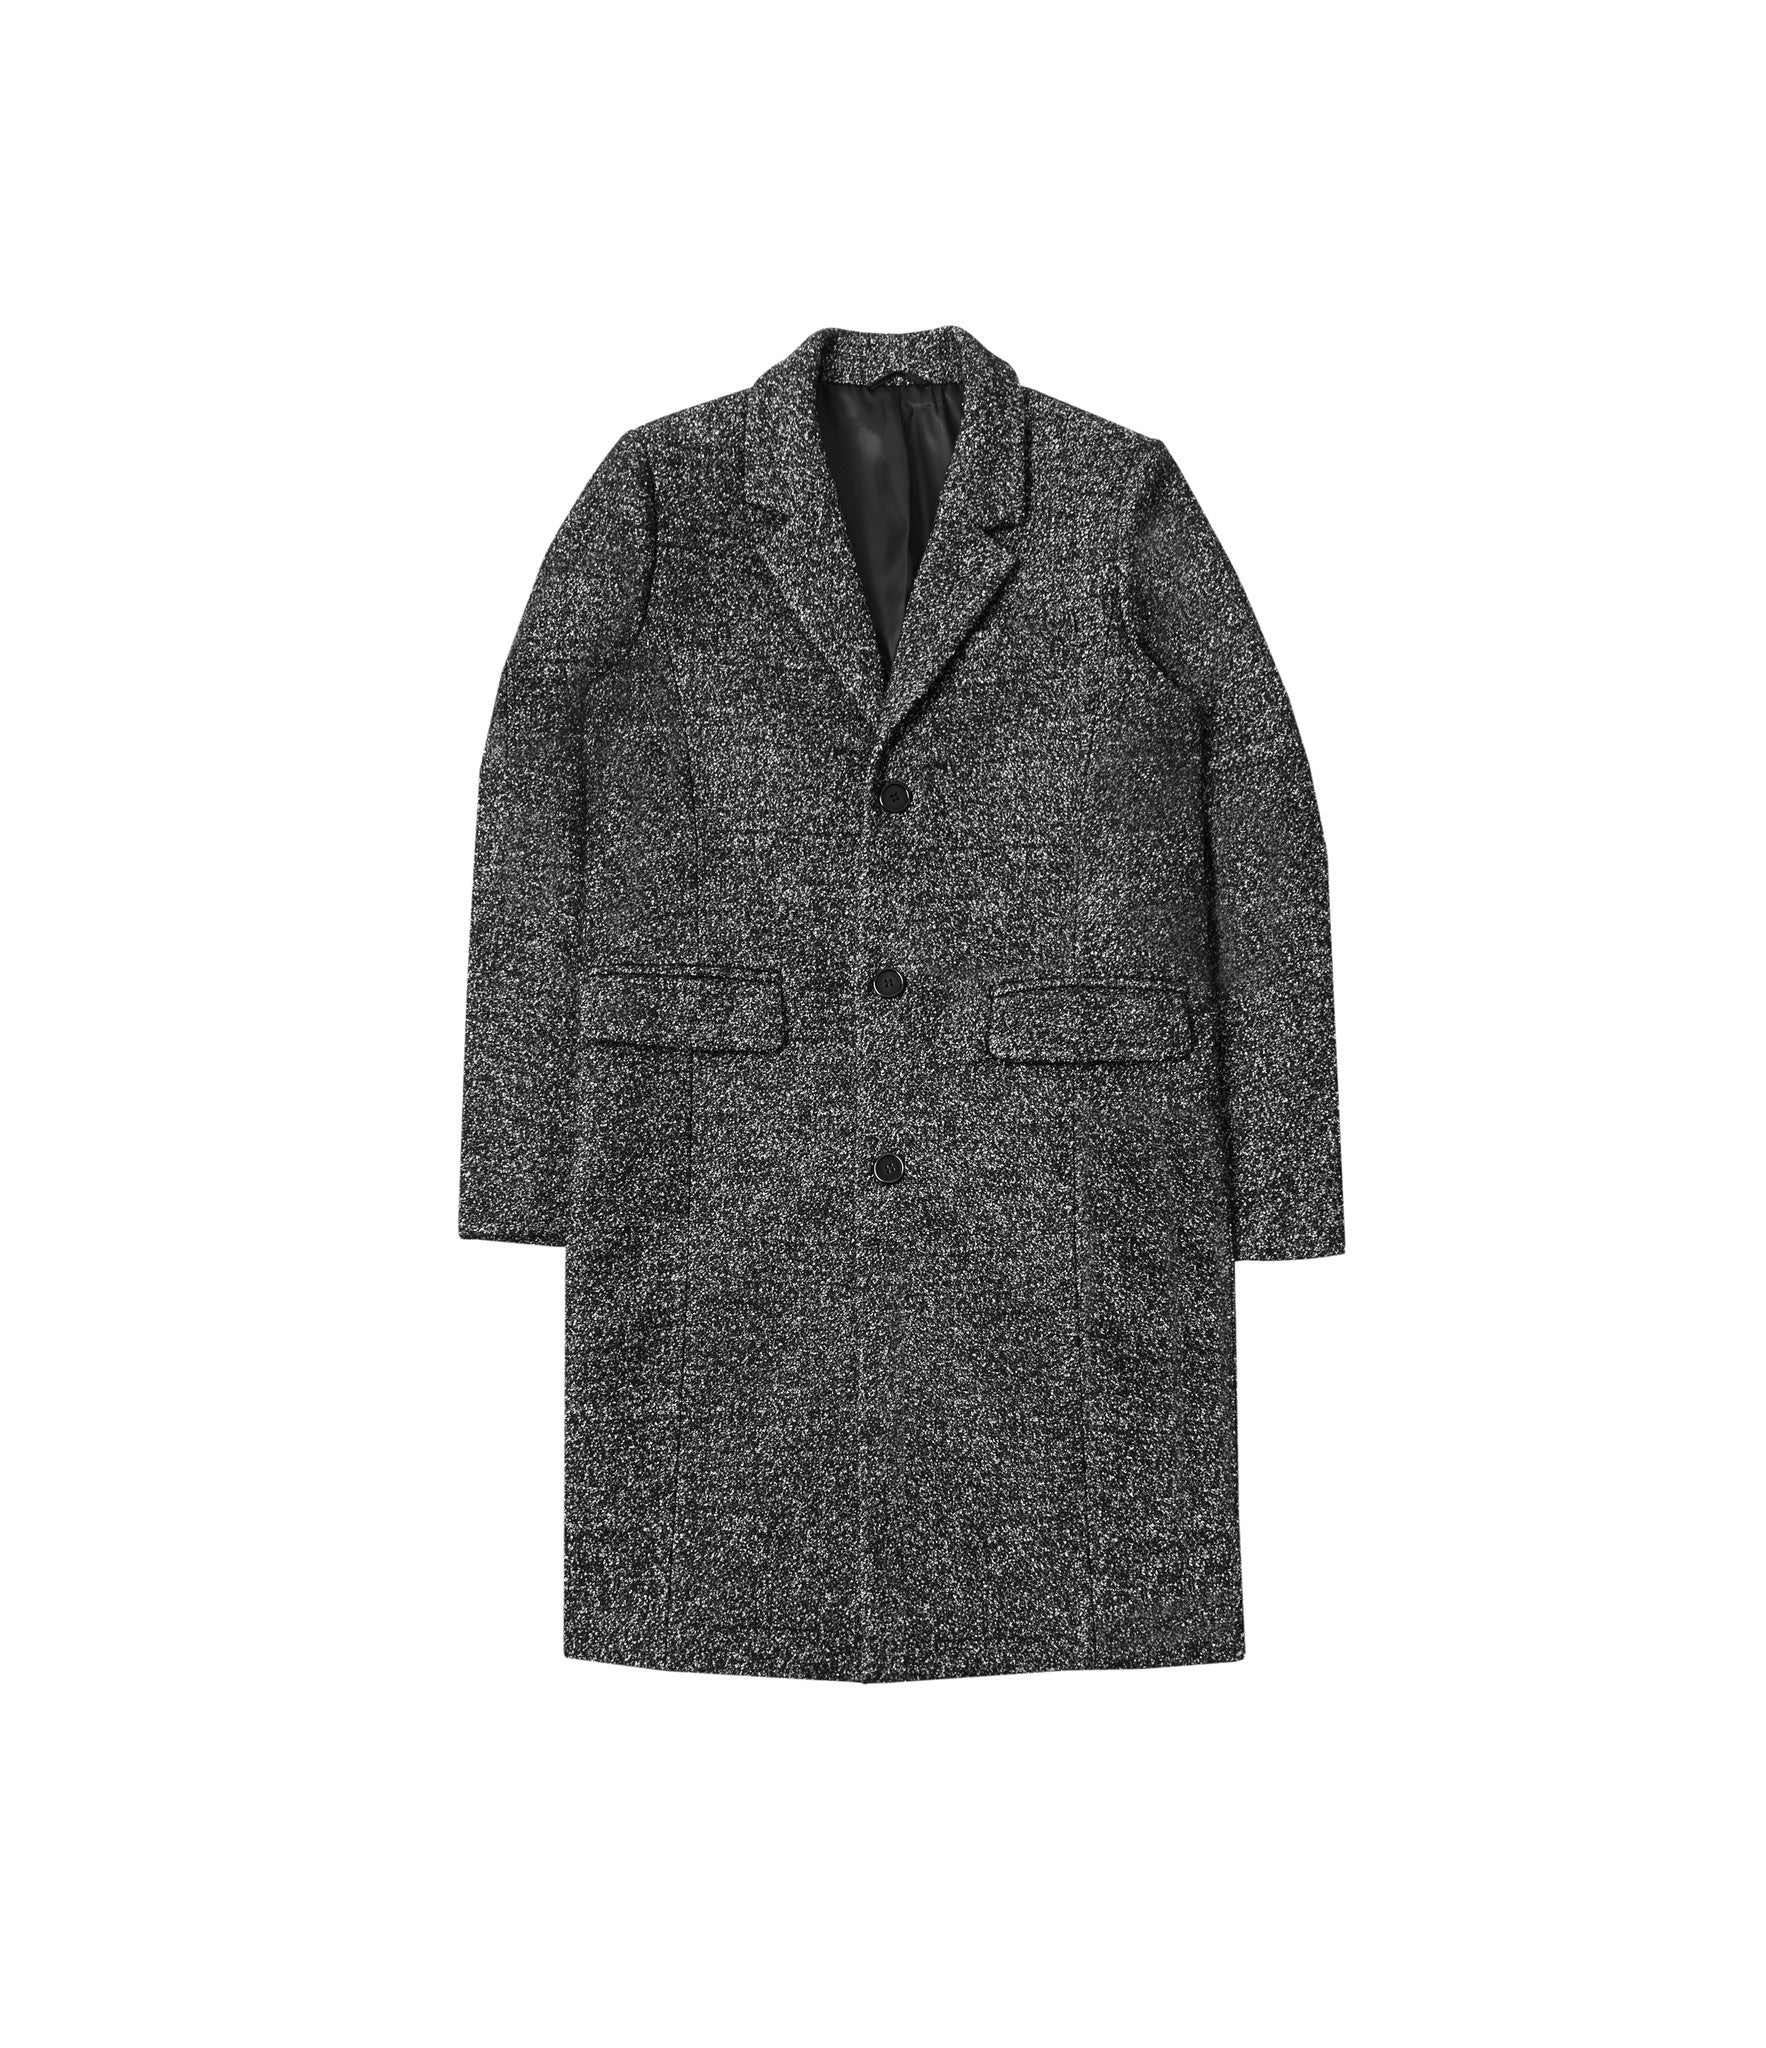 Underated - Wool Blend Overcoat - COMMON  - 1